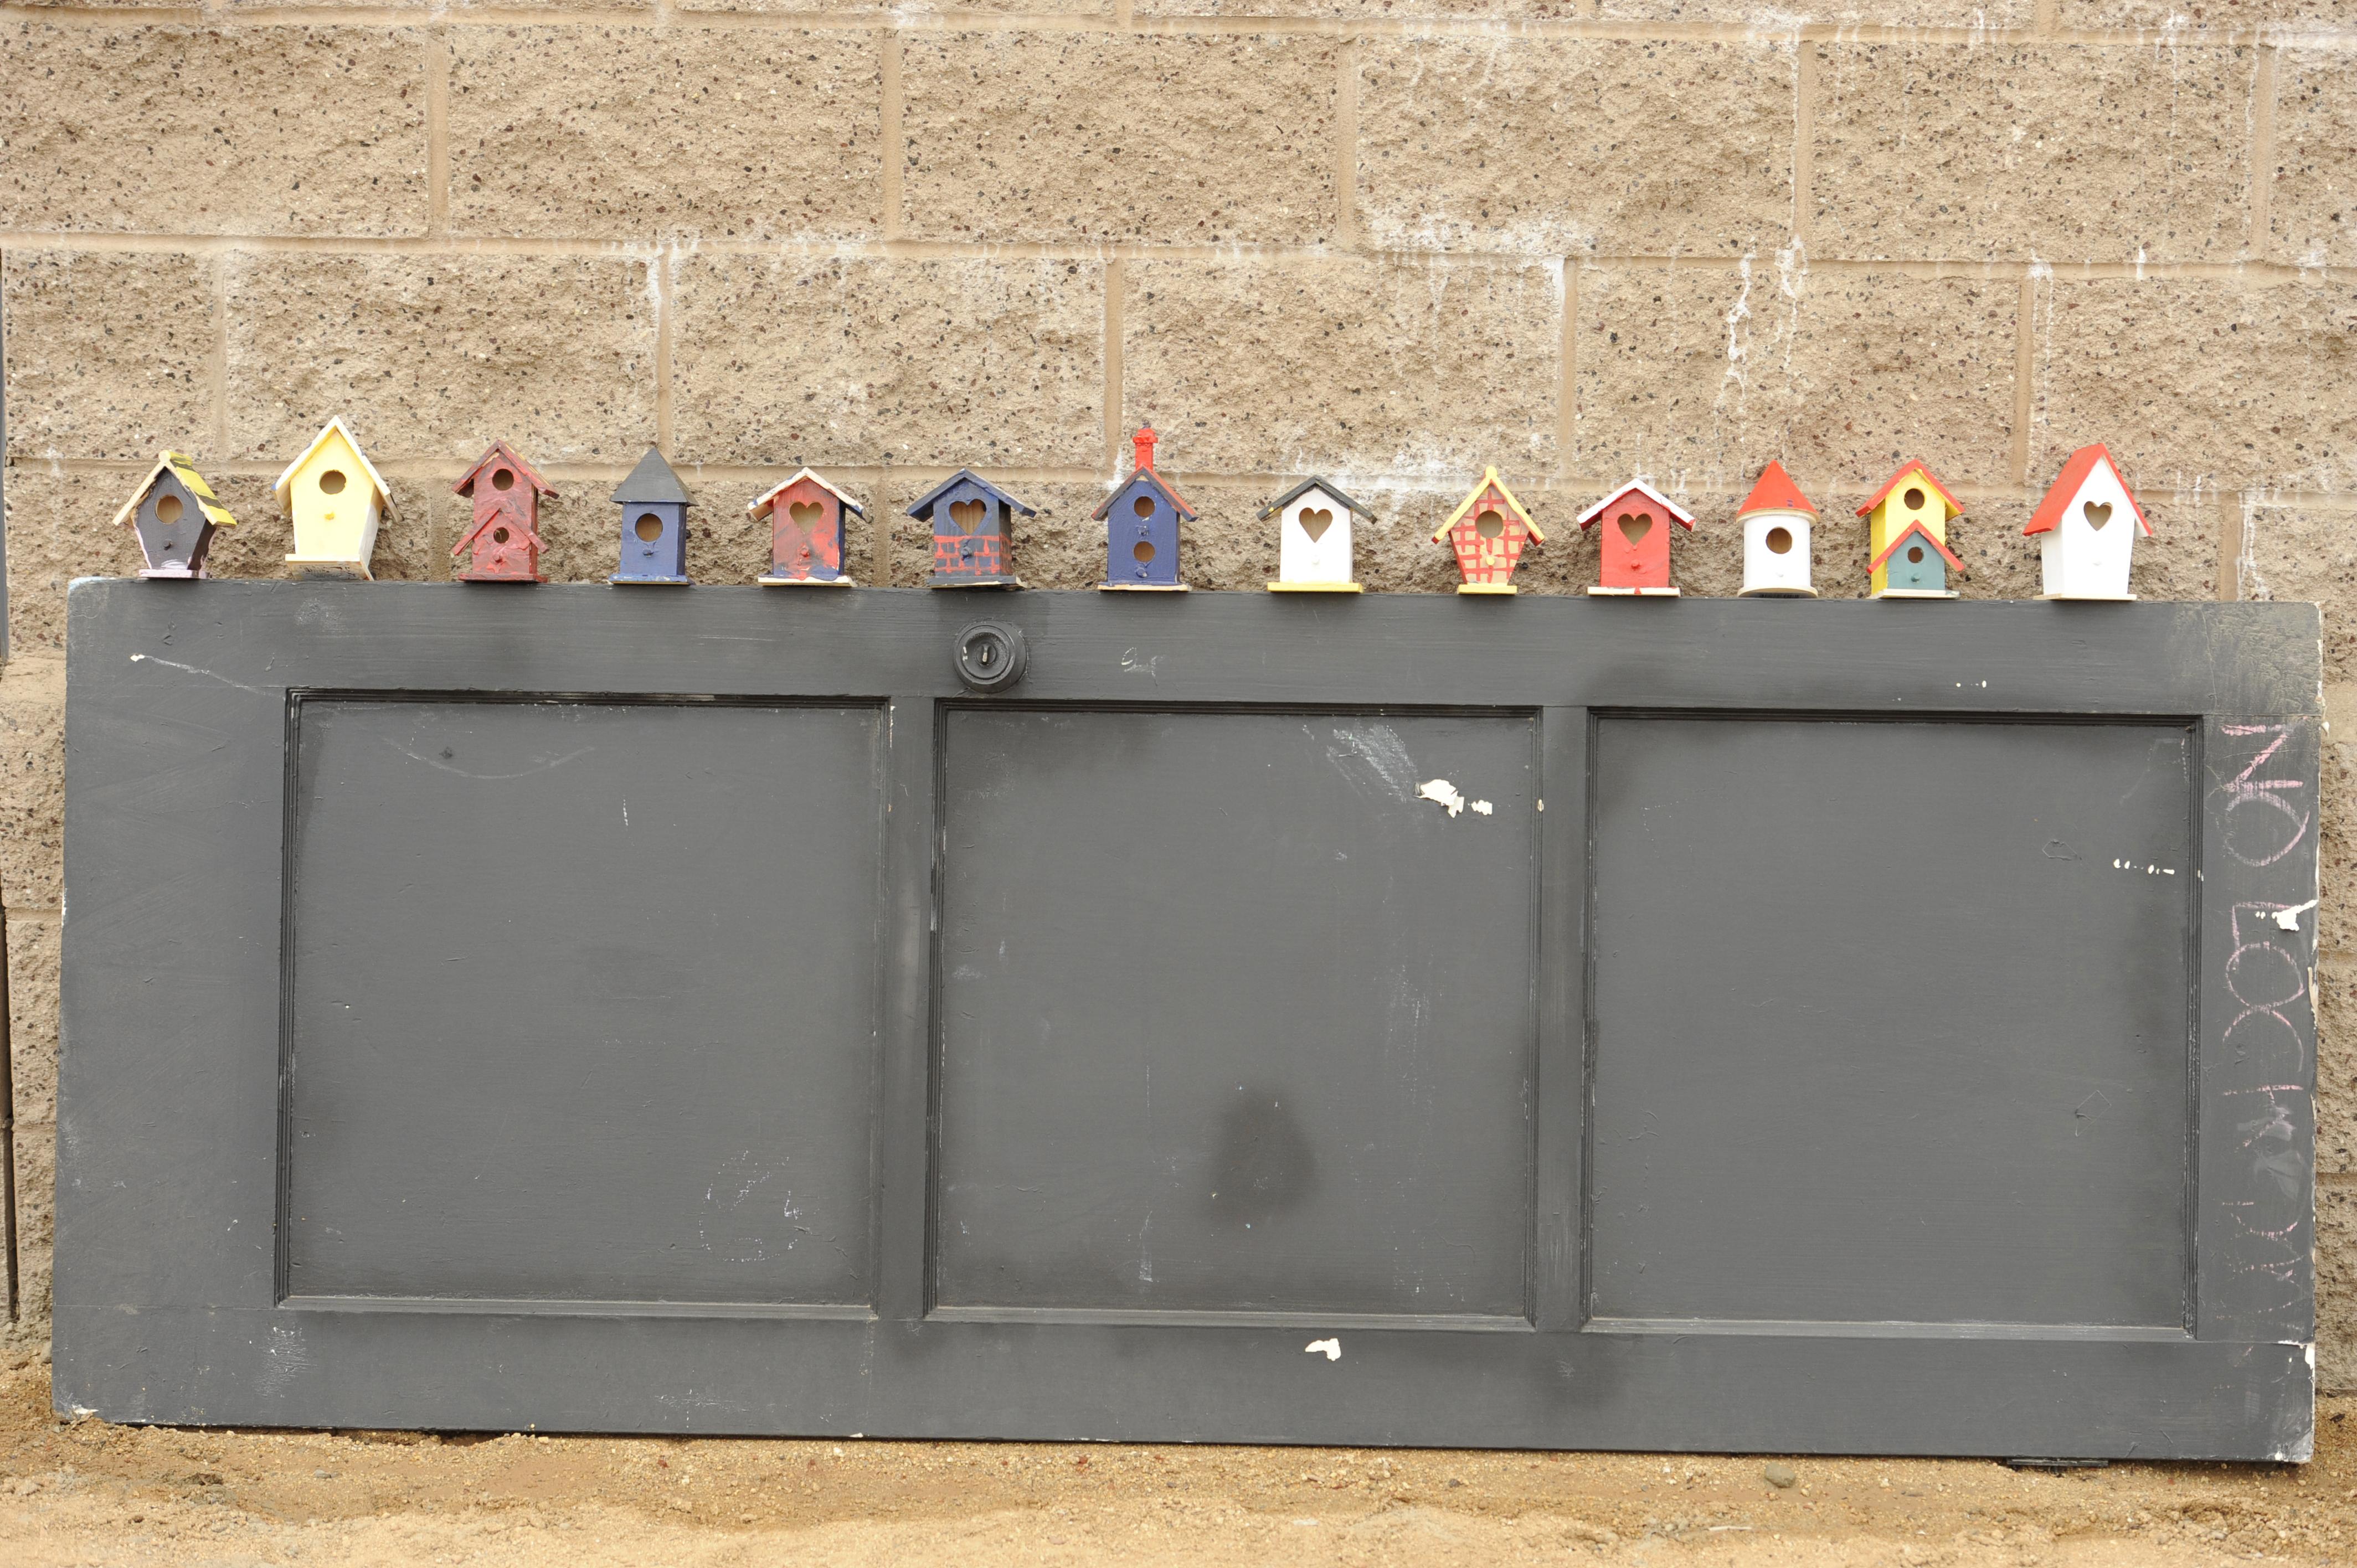 13 small bird houses on display